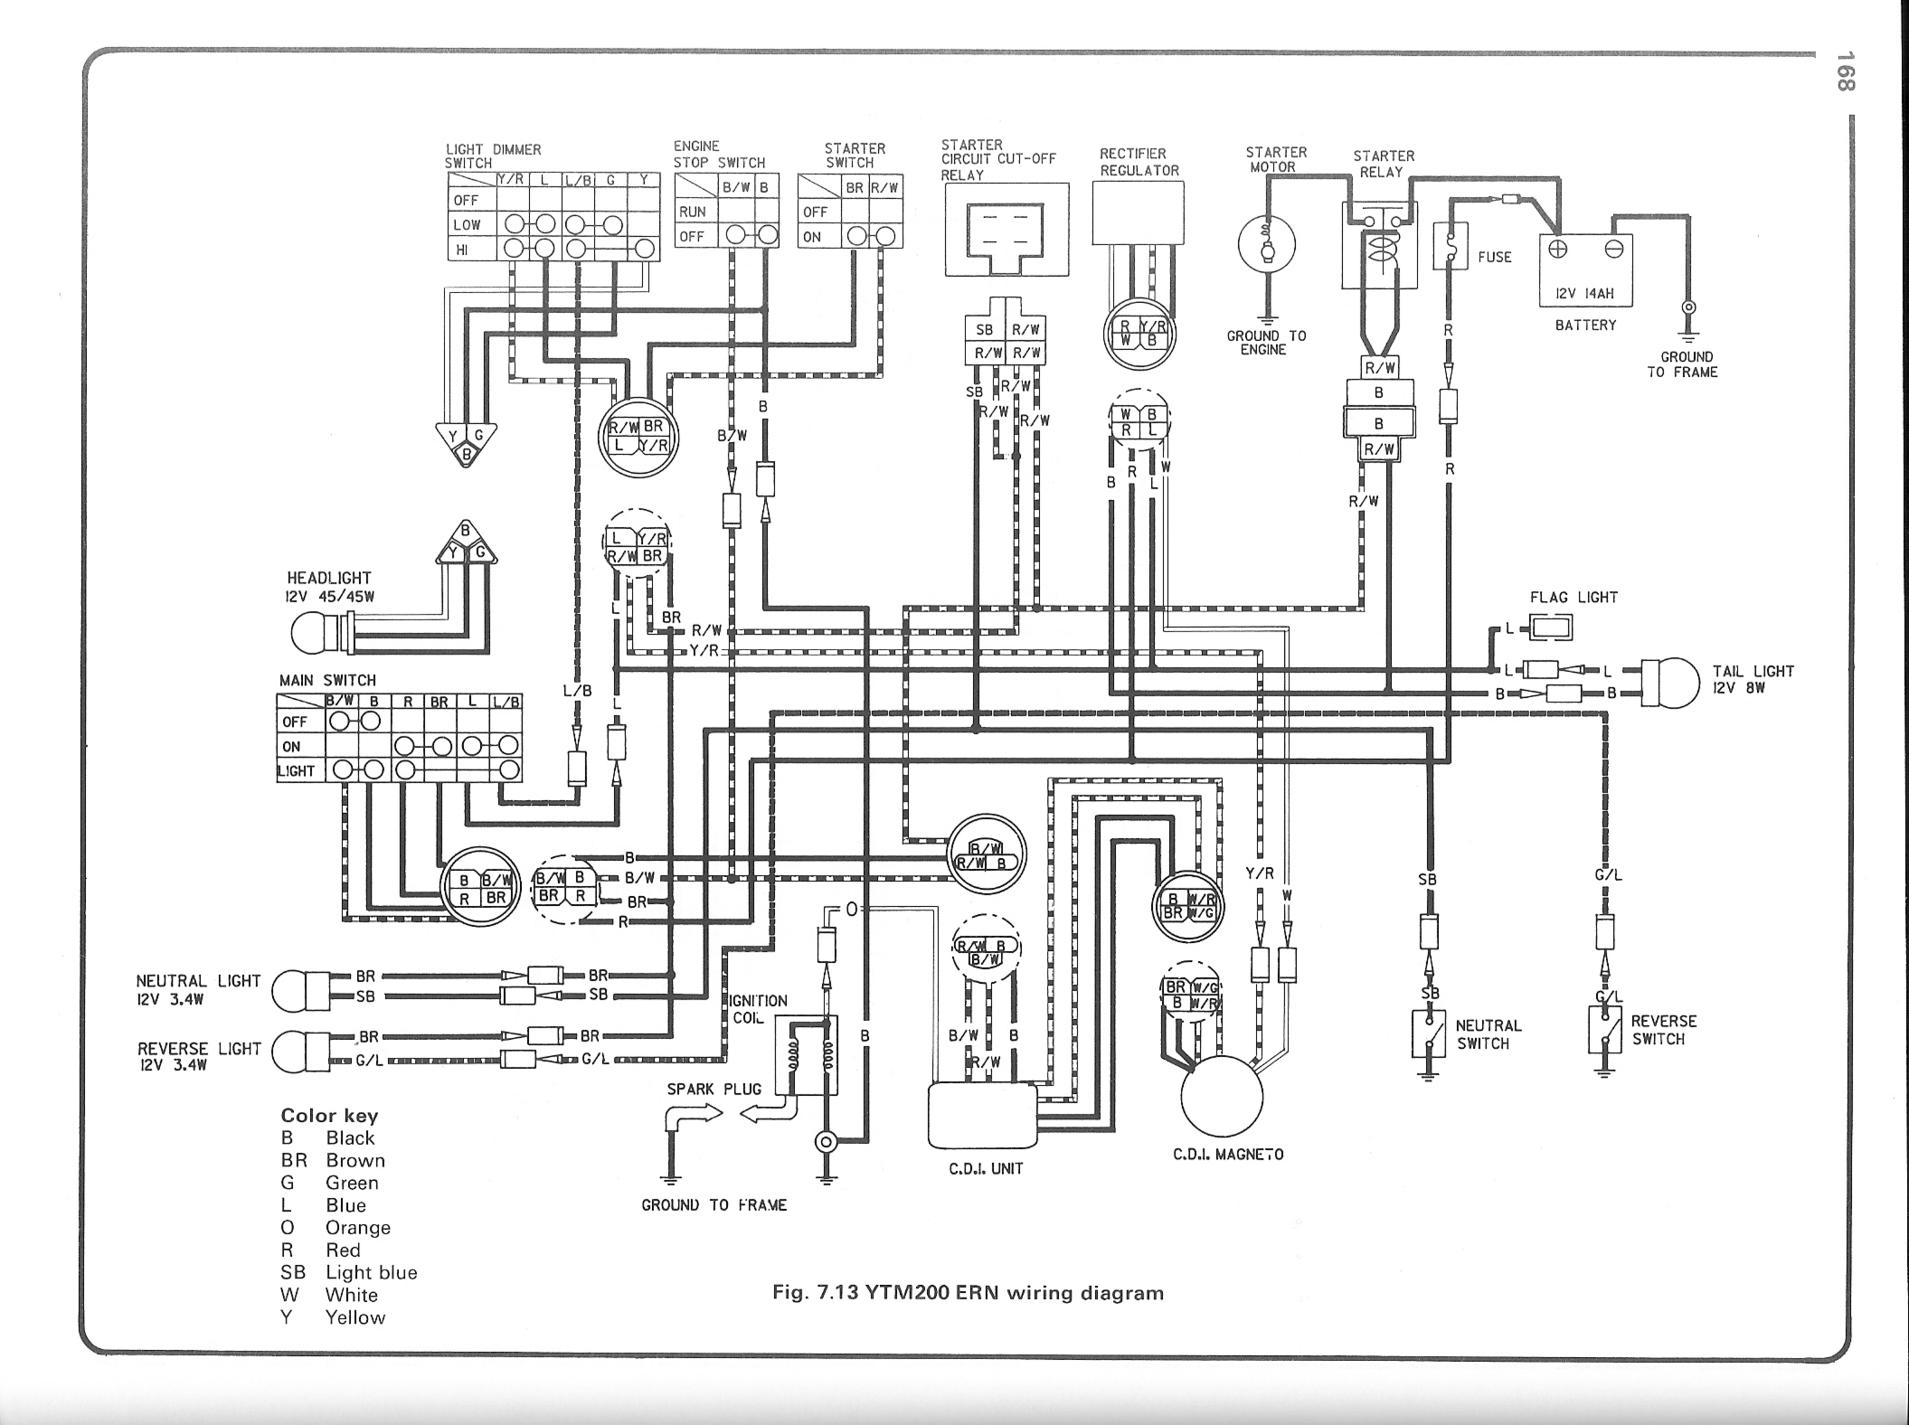 simple wiring diagrams for outlet simple manual repair wiring buyang 107cc wiring diagram